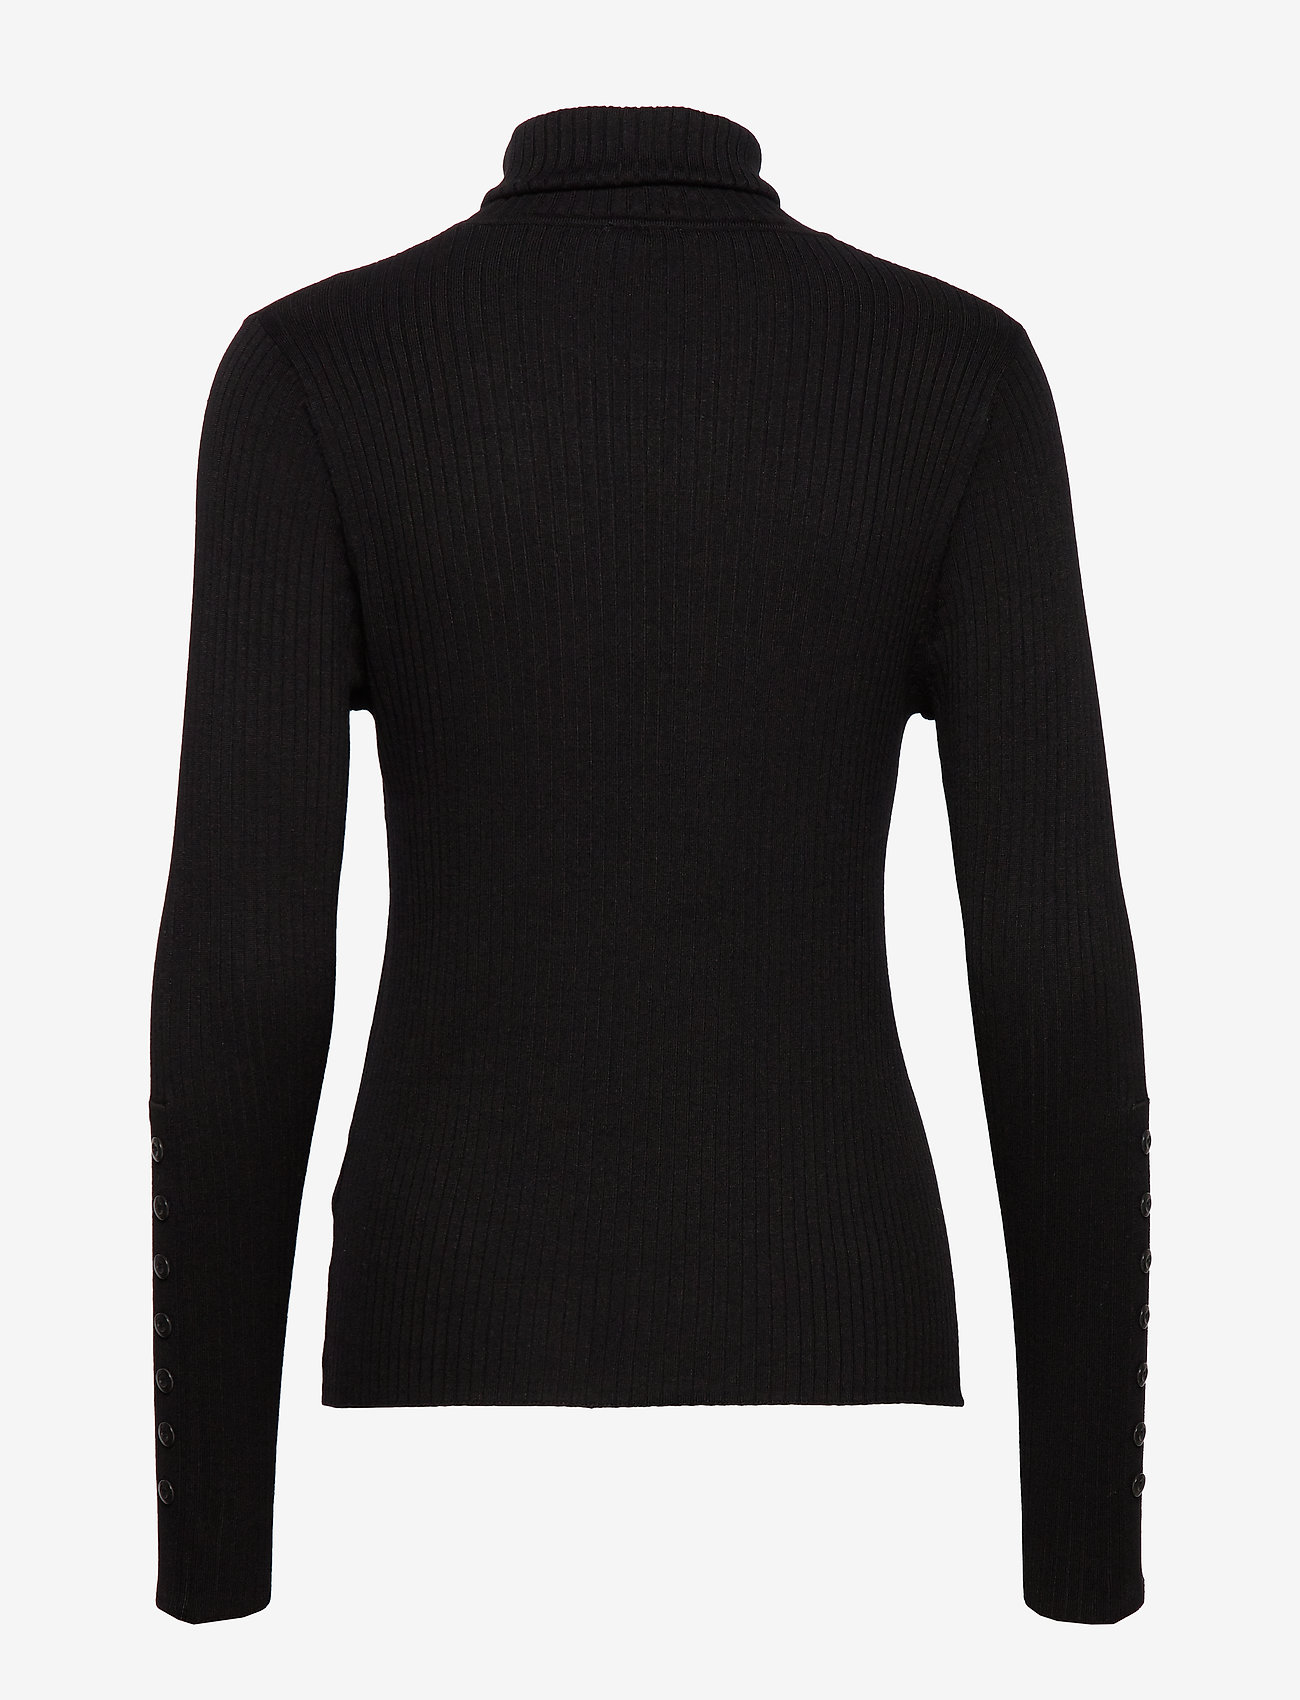 Pullover Long-sleeve (Black) (569.40 kr) - Gerry Weber